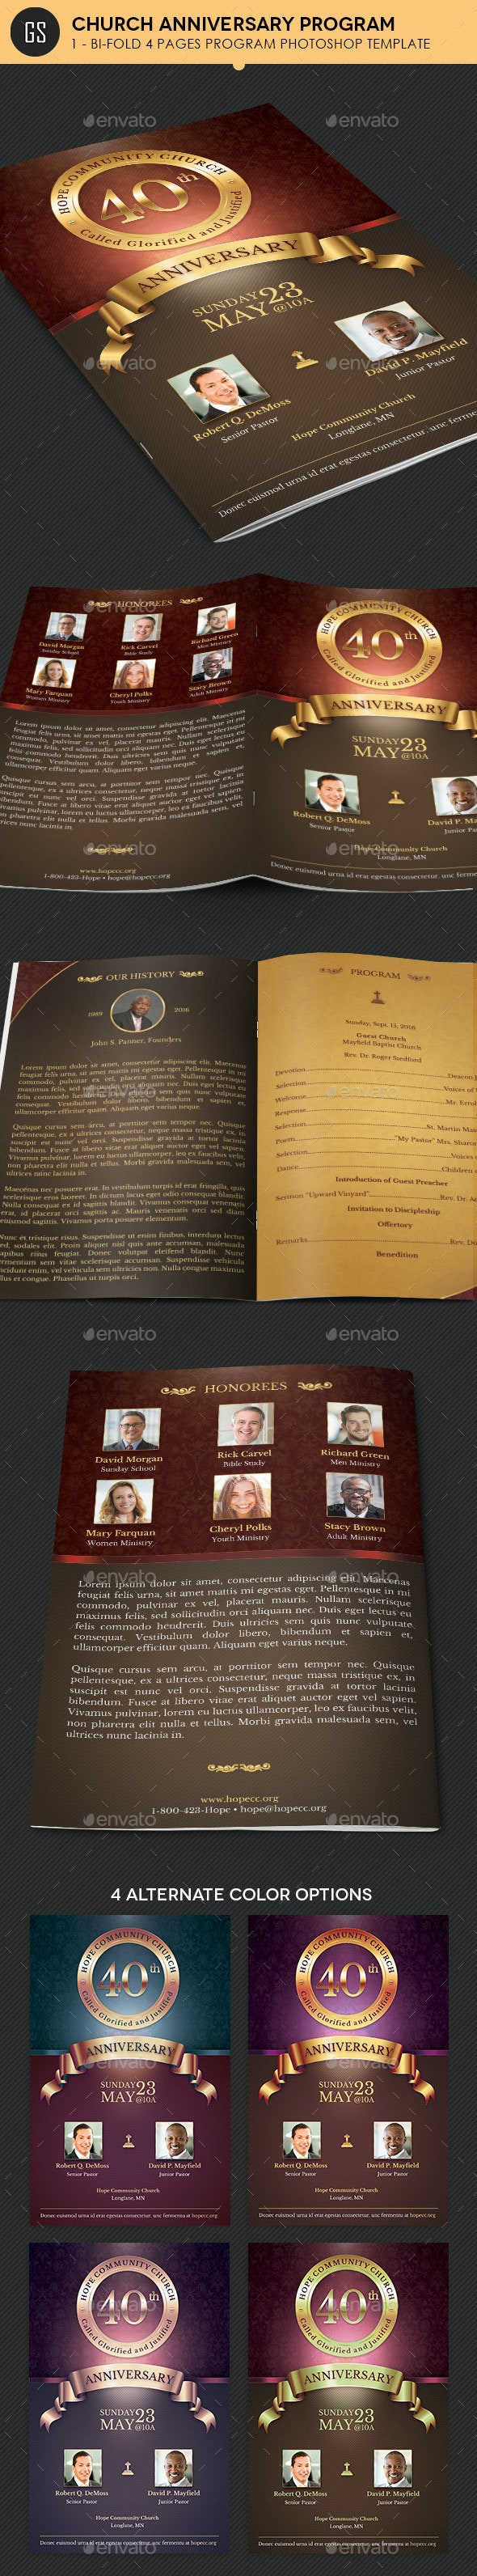 Church Anniversary Program Template - Informational Brochures